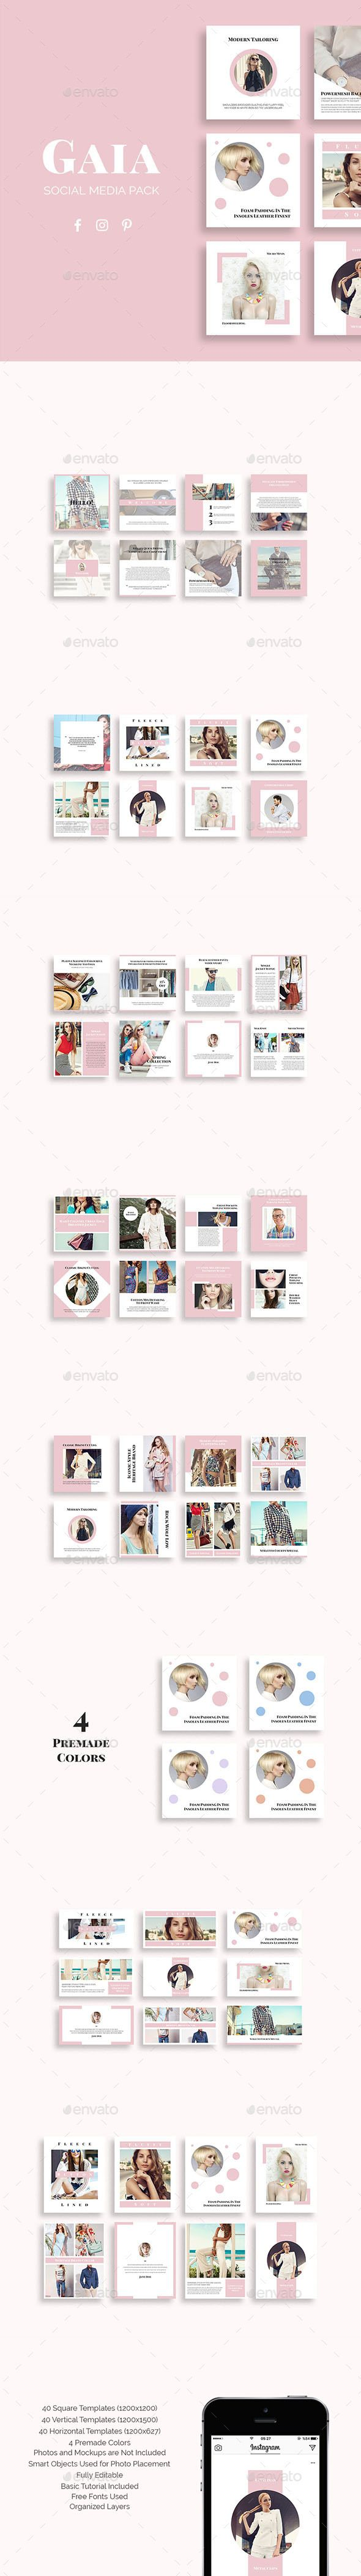 Gaia Social Media Pack — Photoshop PSD #commerce #accessories